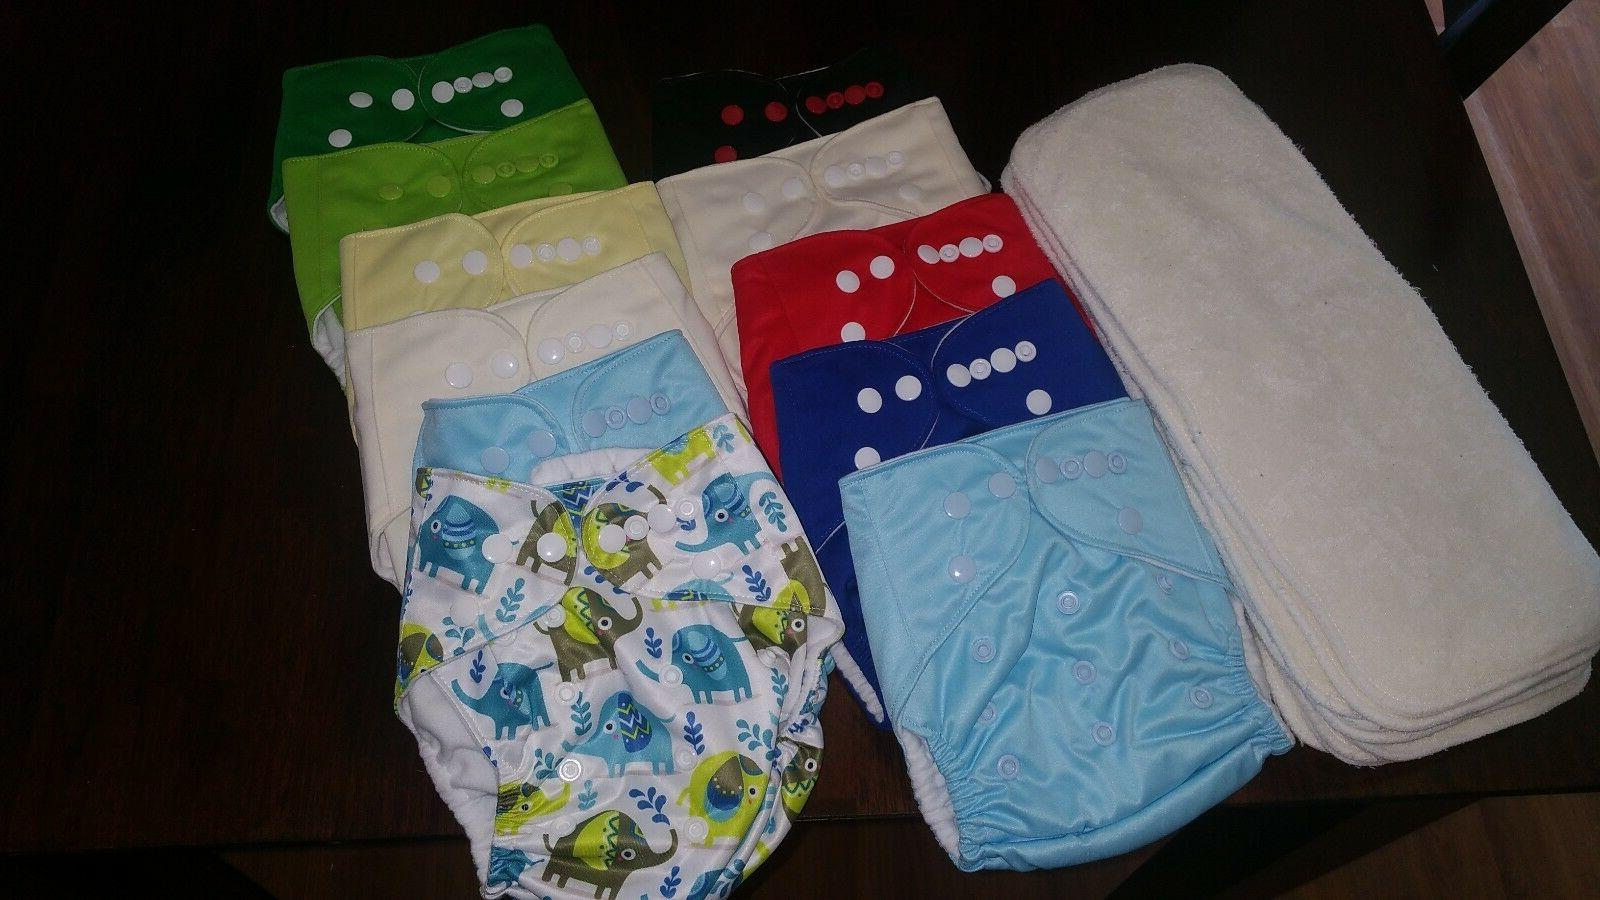 12 brand new cloth diapers inserts